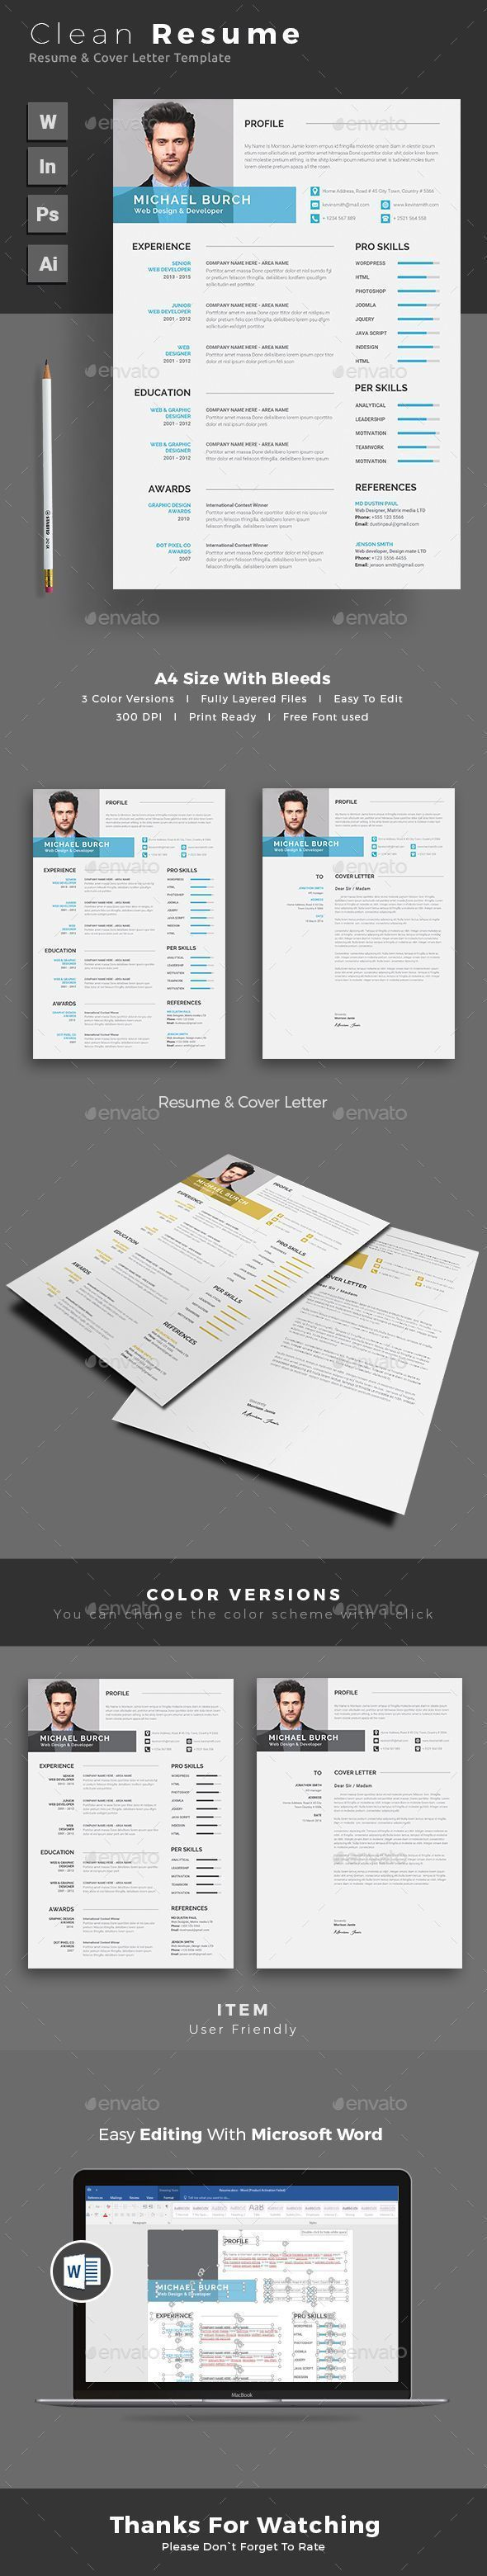 excellent resume formats%0A best website to post resume